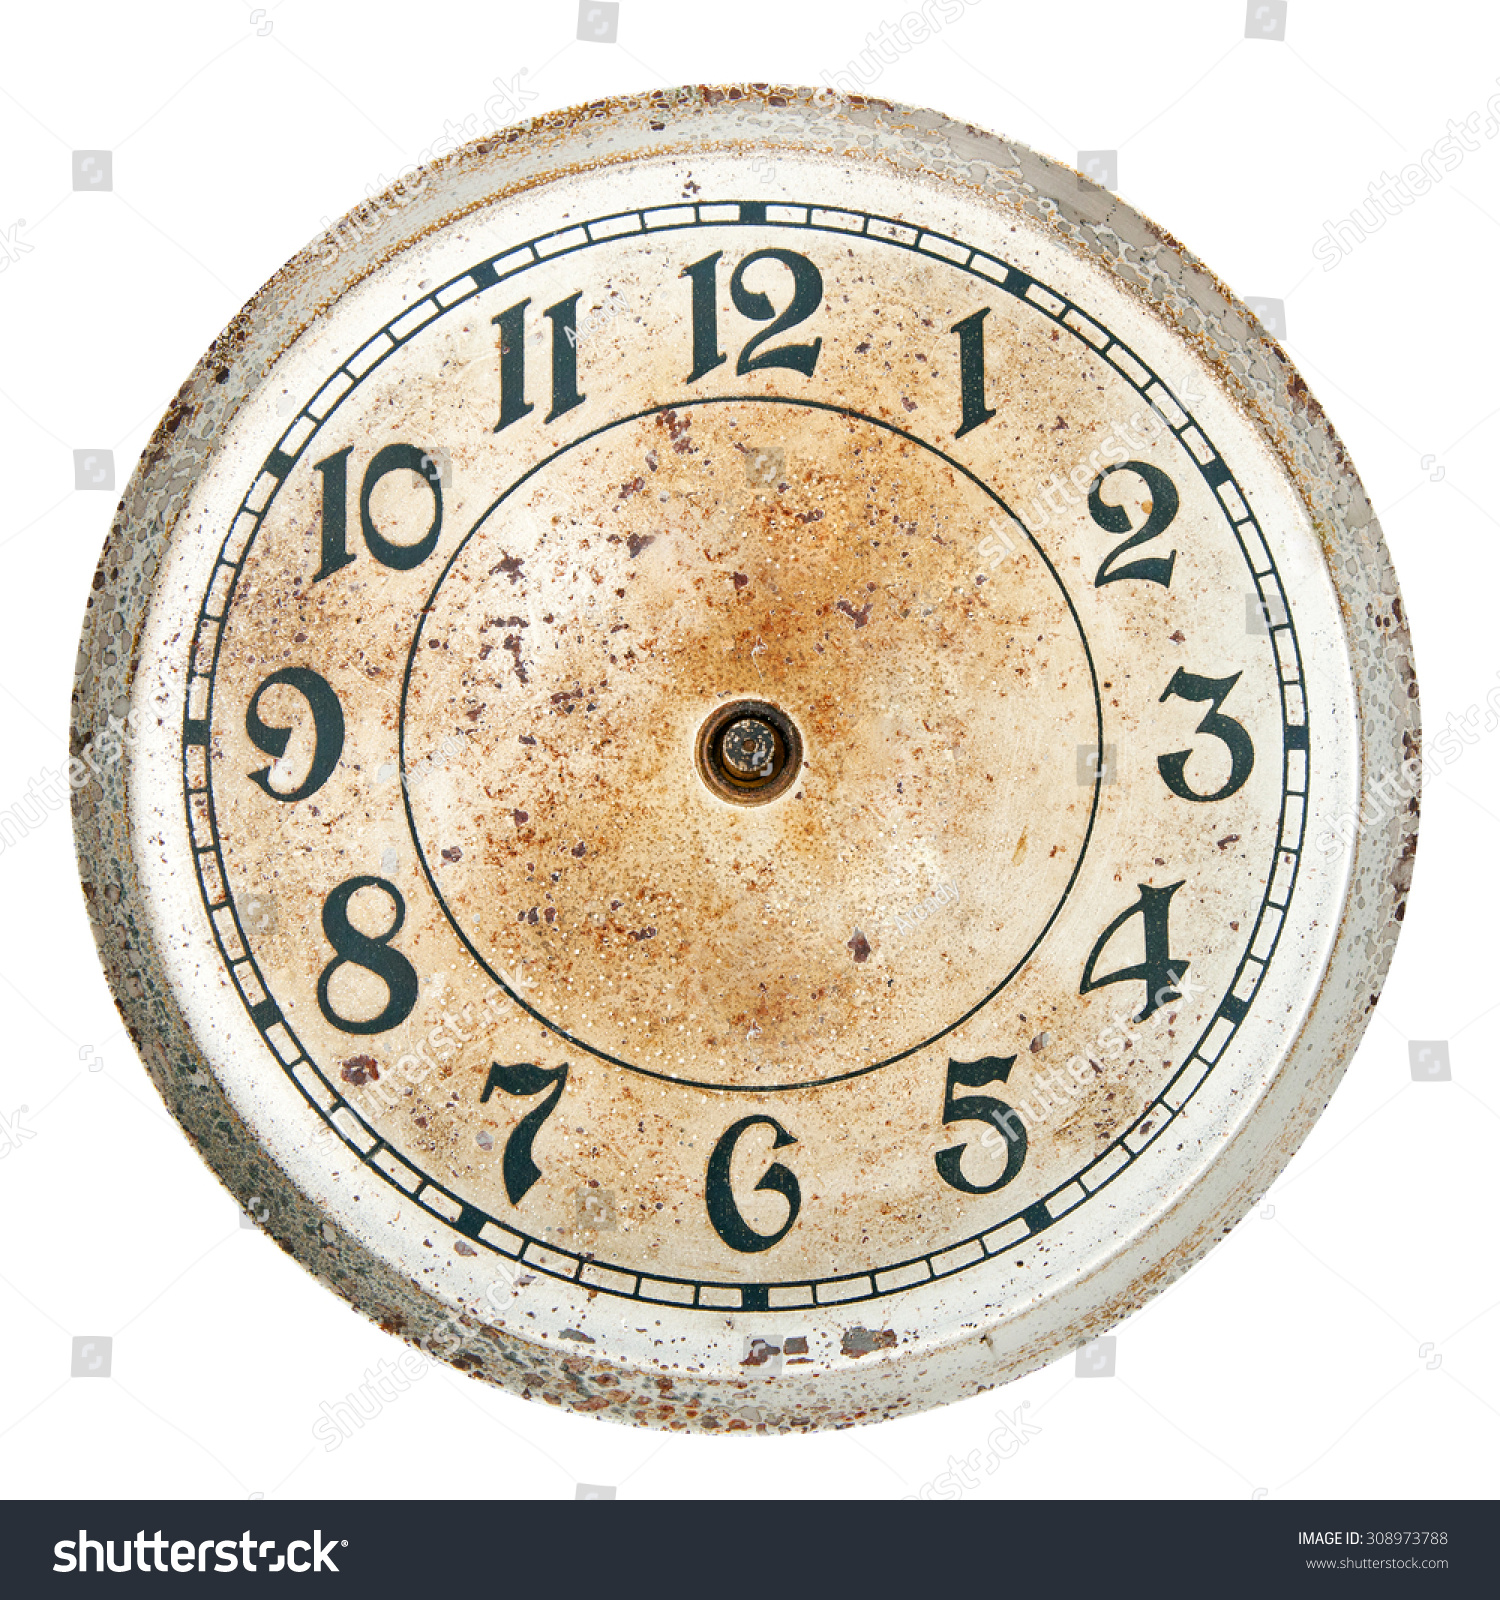 worksheet Clock Blank blank clock dial without hands stock photo 308973788 shutterstock hands